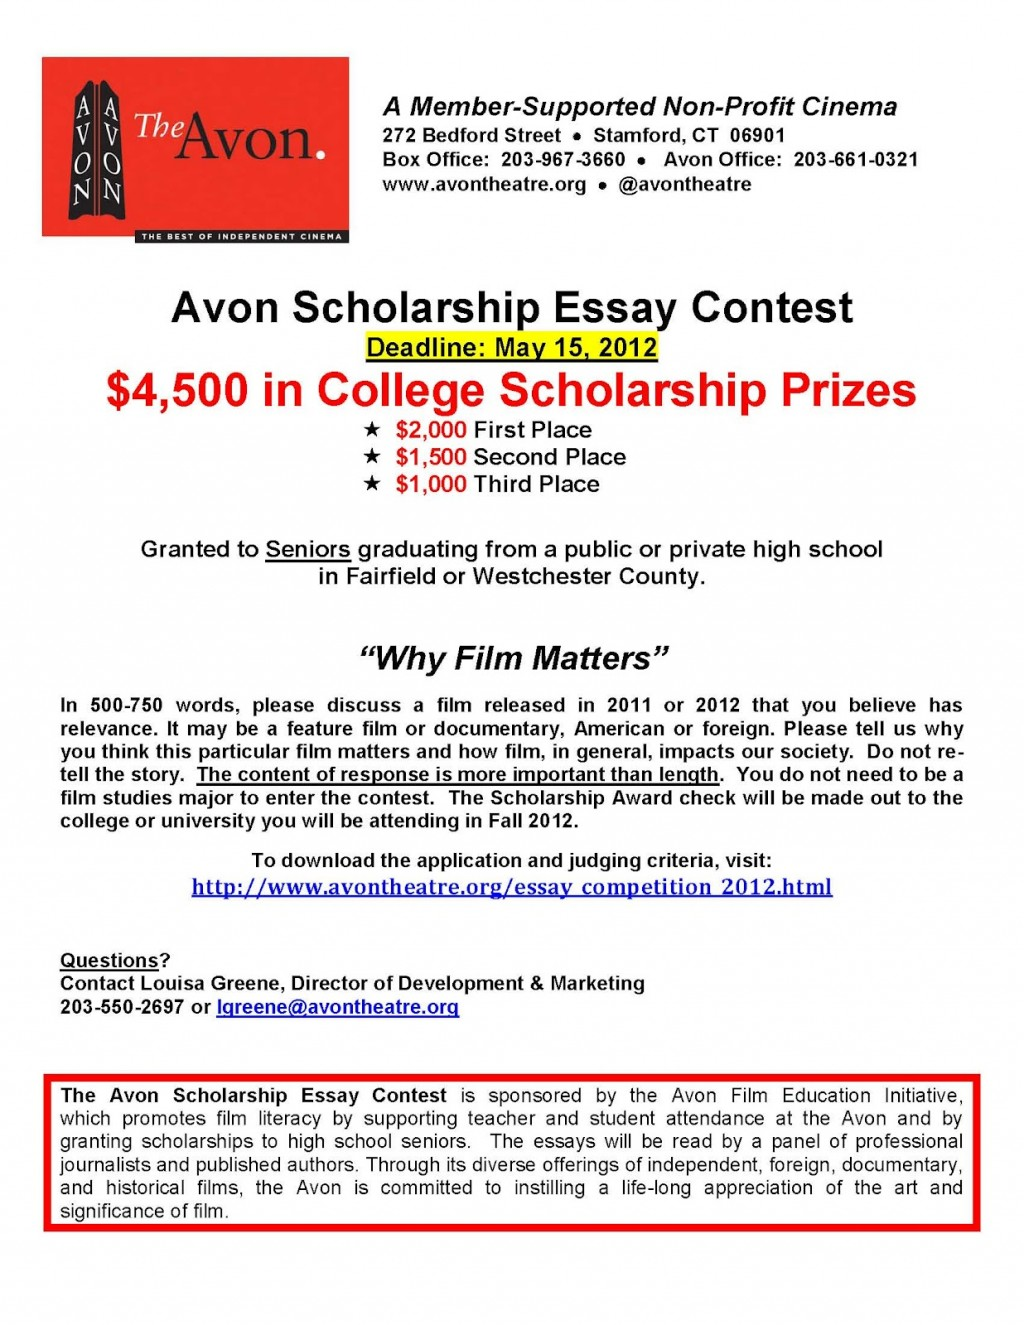 016 Avonscholarshipessaycontest2012flyer Essay Example Shocking Scholarships For High School Sophomores No 2018 Large